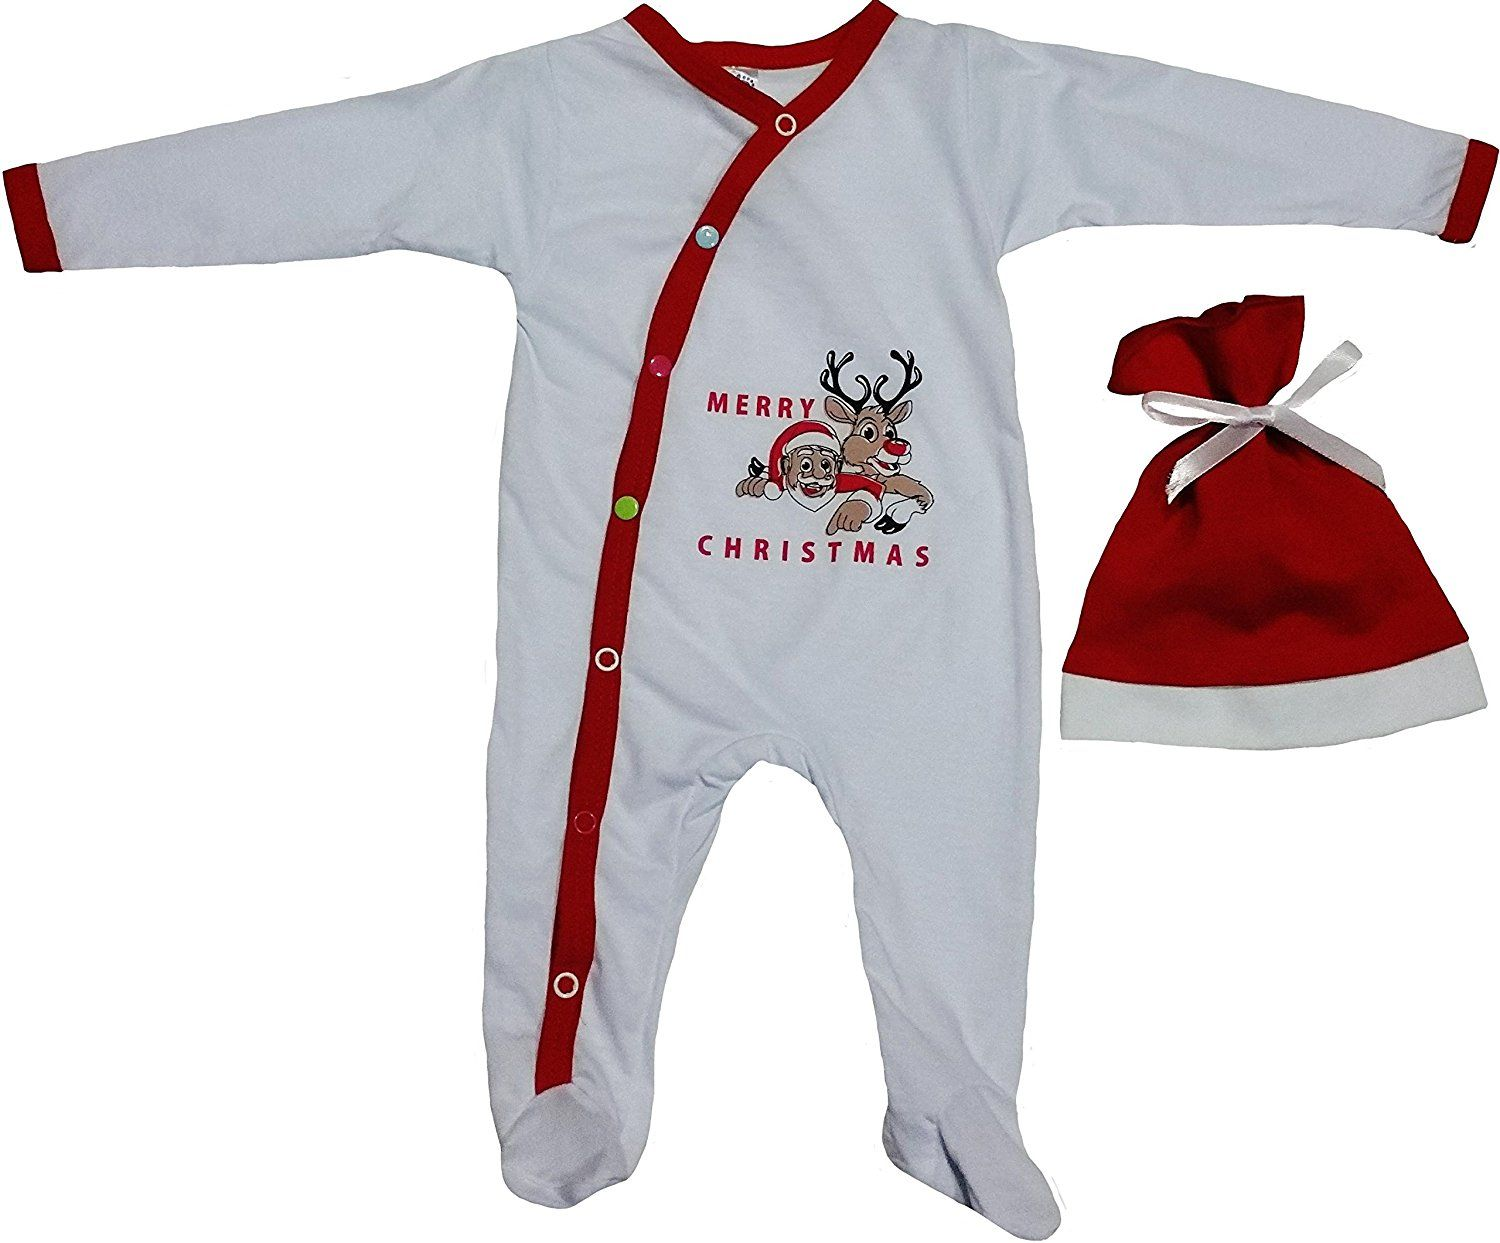 Baby First Christmas Outfit For Infants with Reindeer and Santa ...